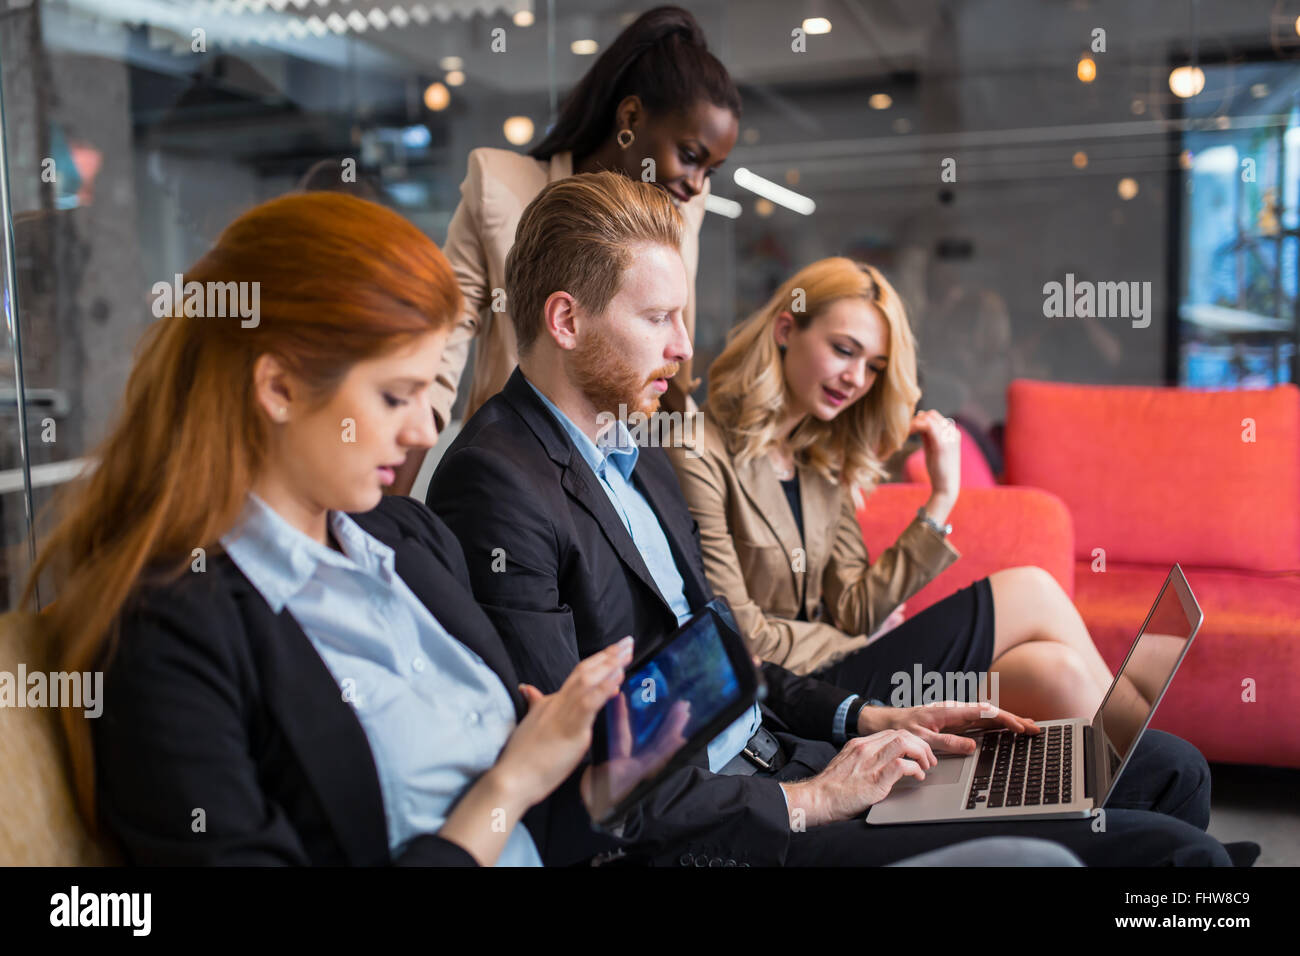 Business people conversation with technology at hand. Exchange of new ideas and brainstorming between colleagues - Stock Image